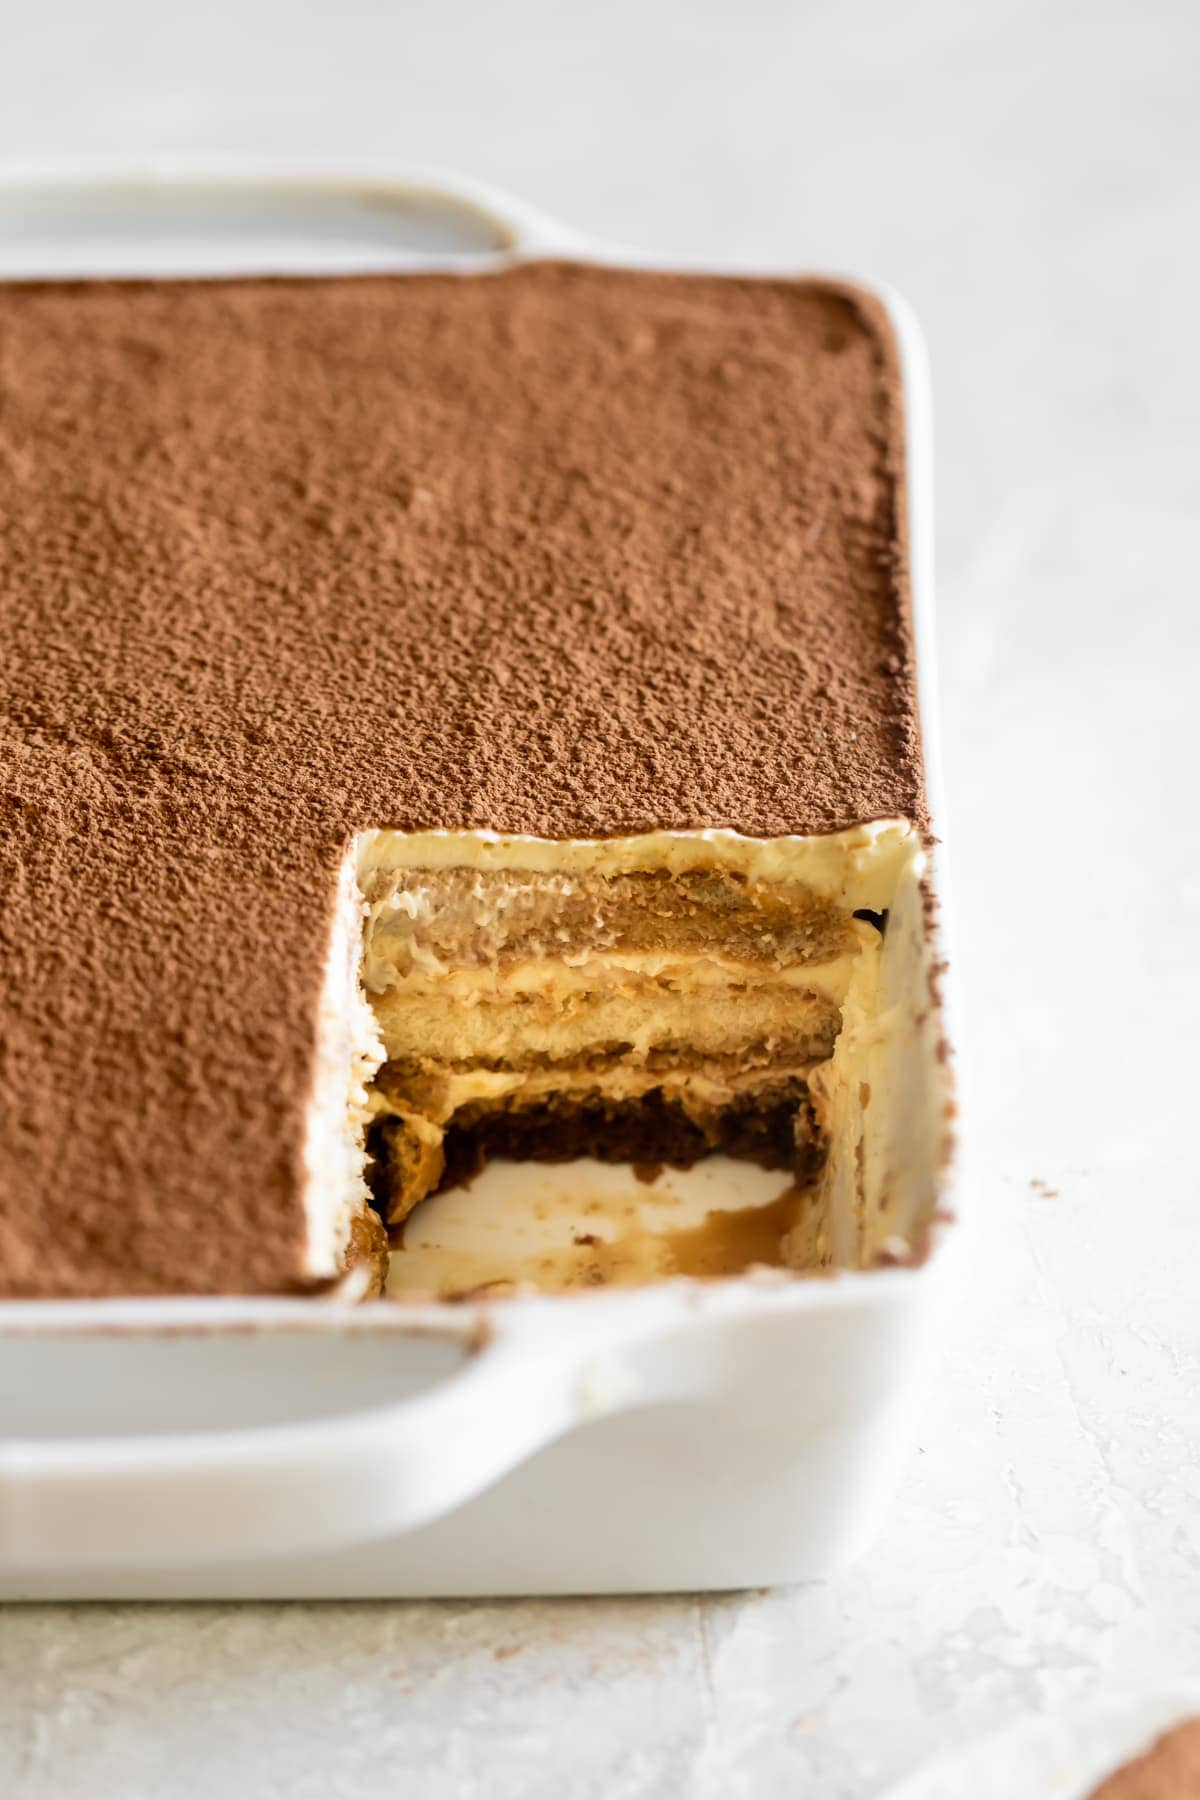 tiramisu with a slice removed to see the filling and layers of mascarpone and espresso soaked ladyfingers